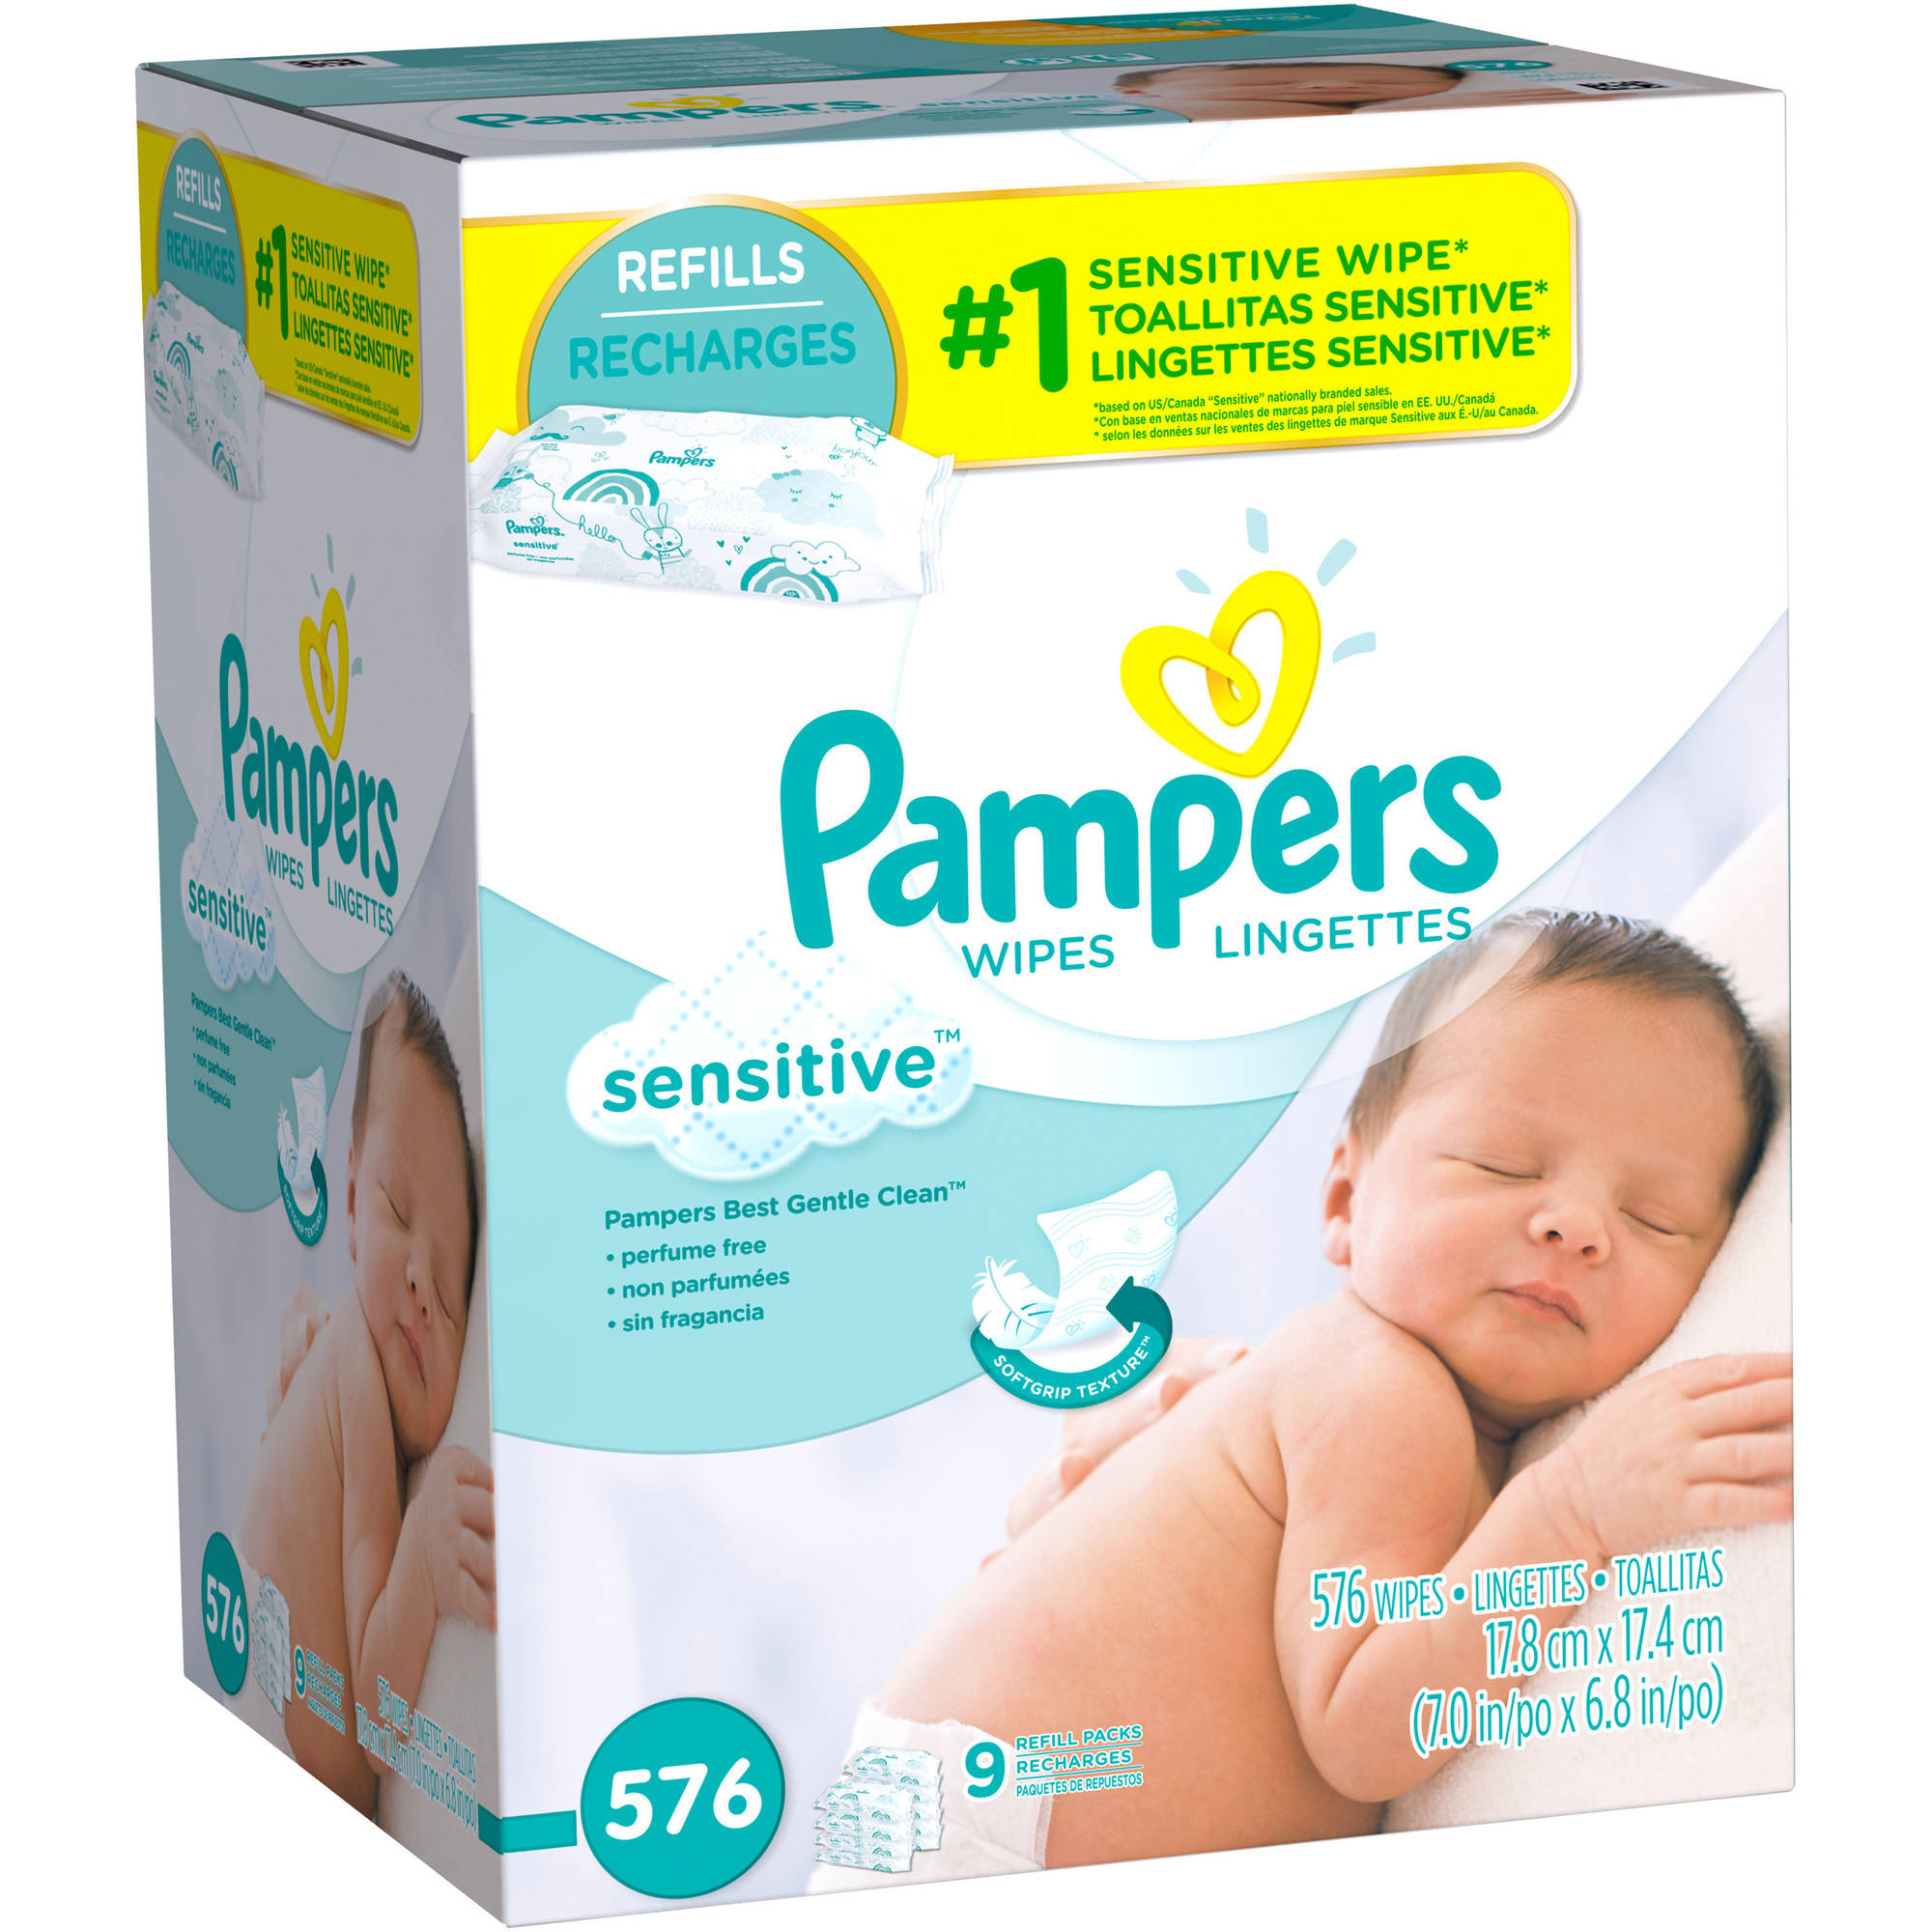 Pampers Sensitive Baby Wipes Refills, 576 sheets